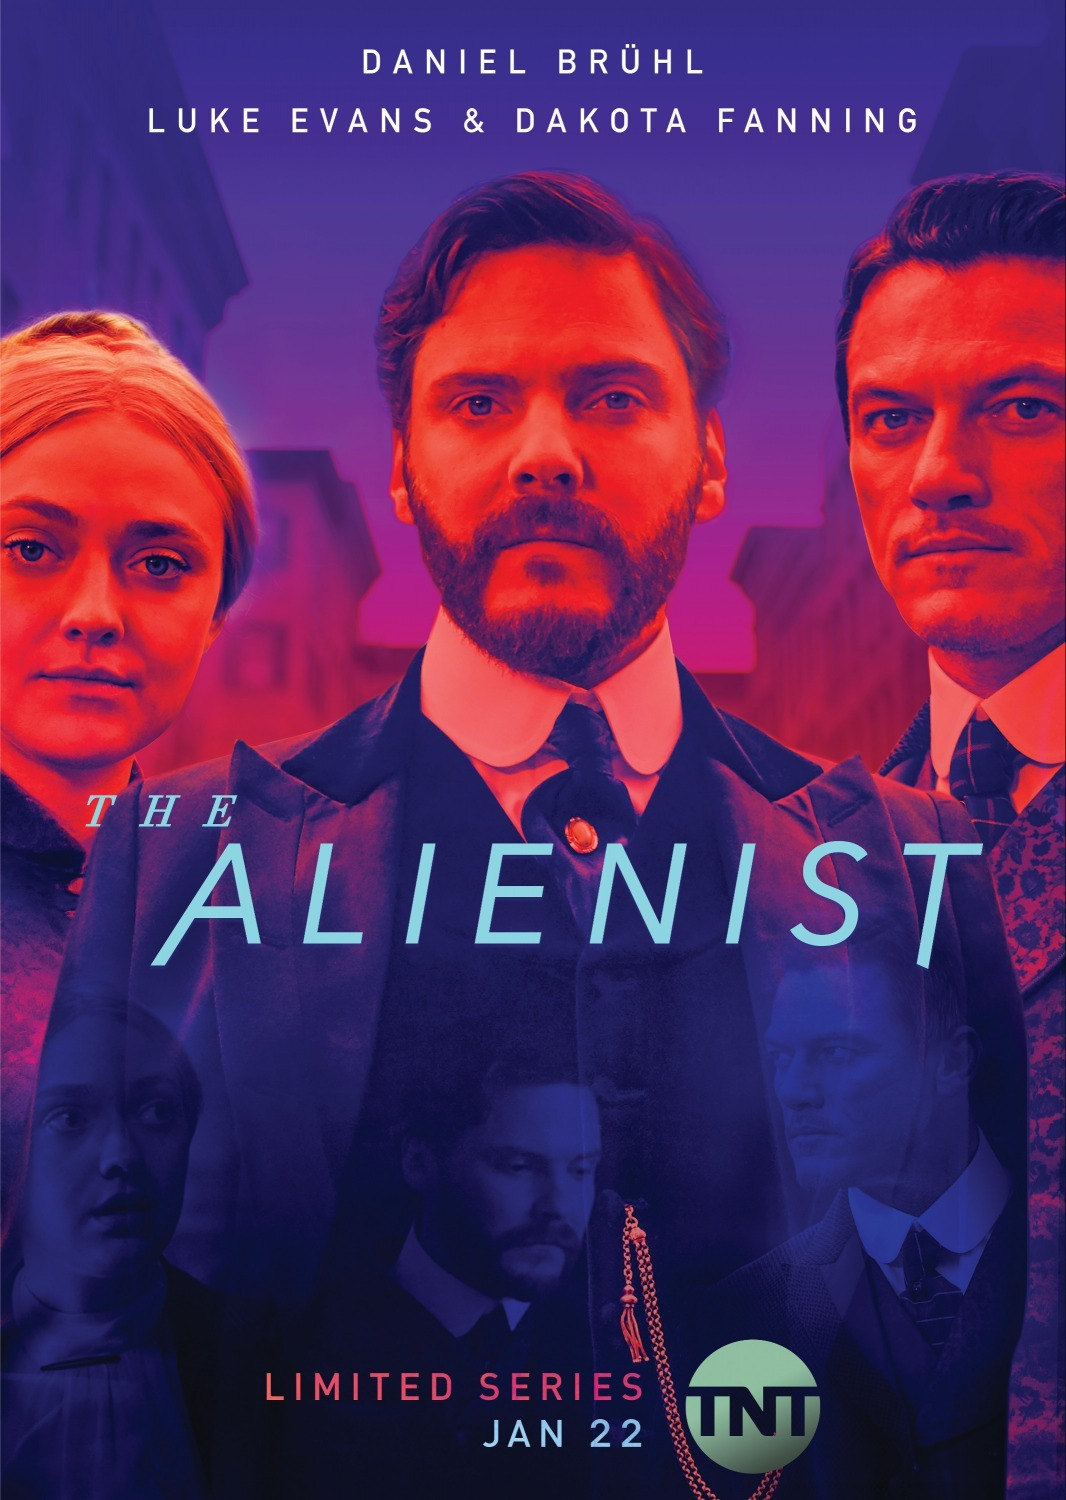 The Alienist S02 2020 Hindi Complete Netflix Web Series 1230MB HDRip Download